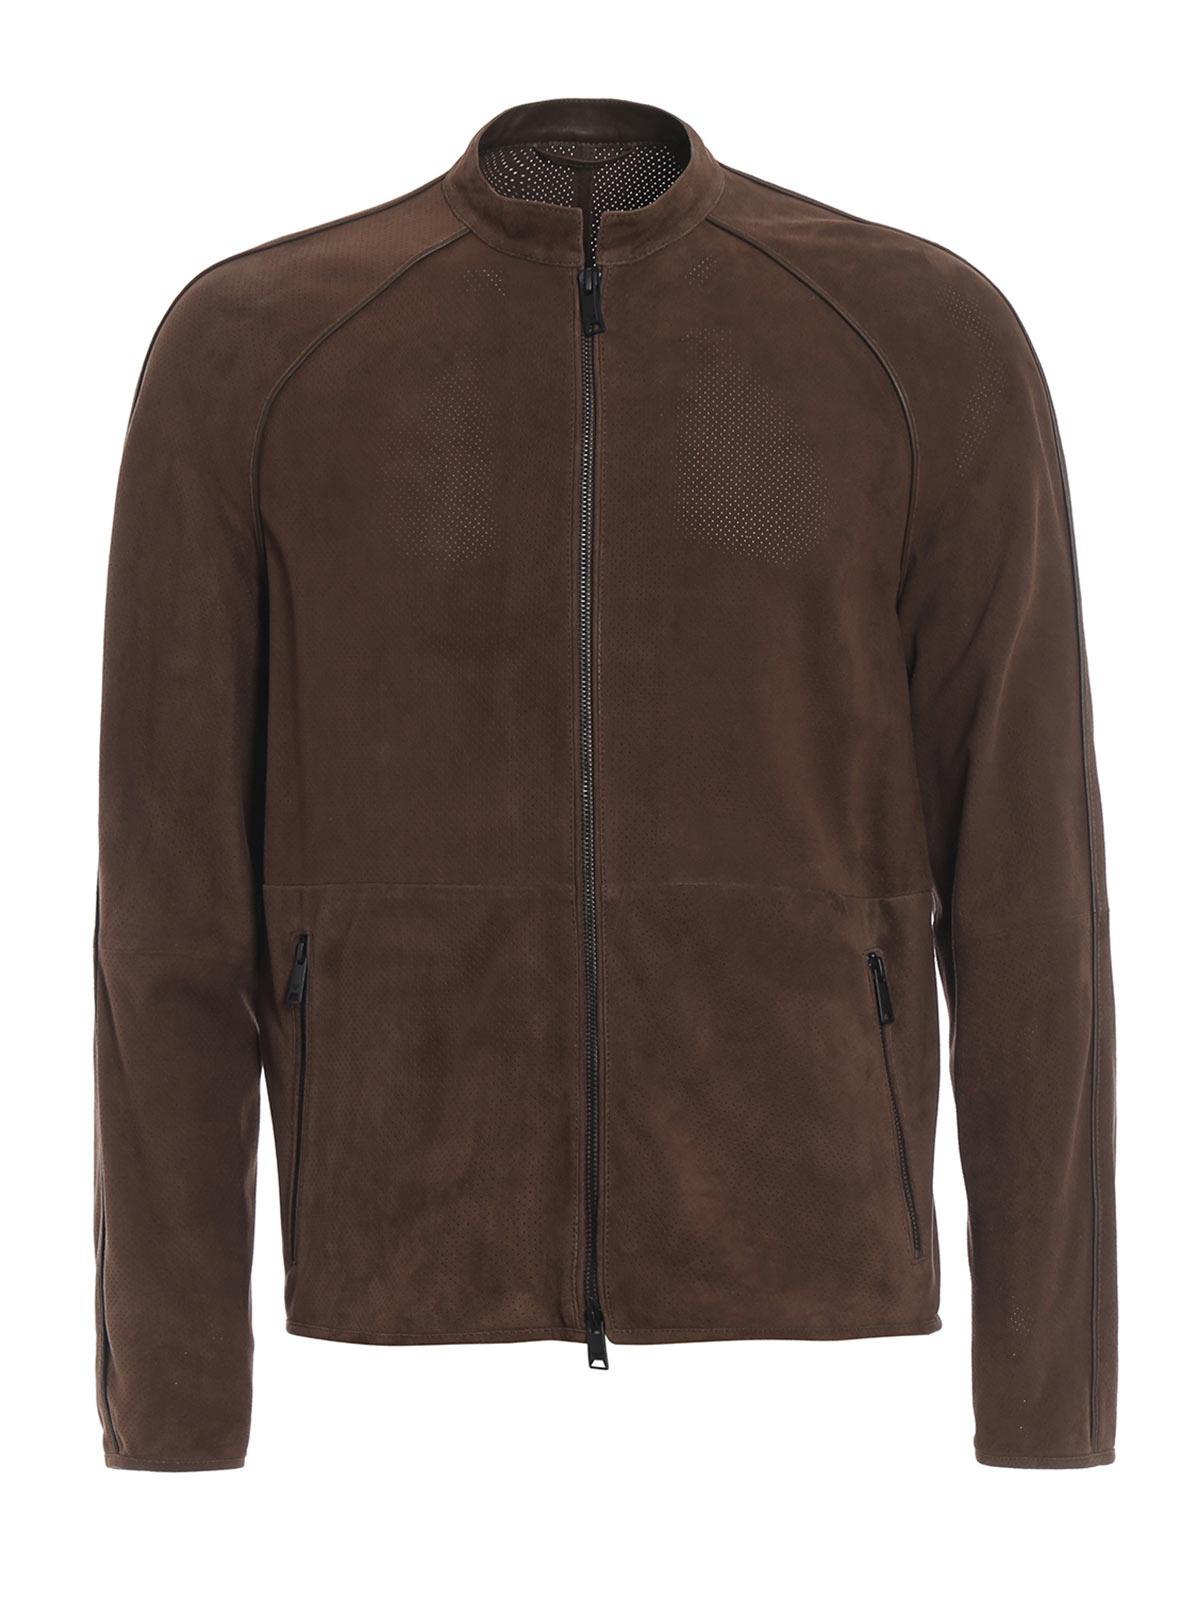 Picture of EMPORIO ARMANI | Men's Perforated Suede Jacket